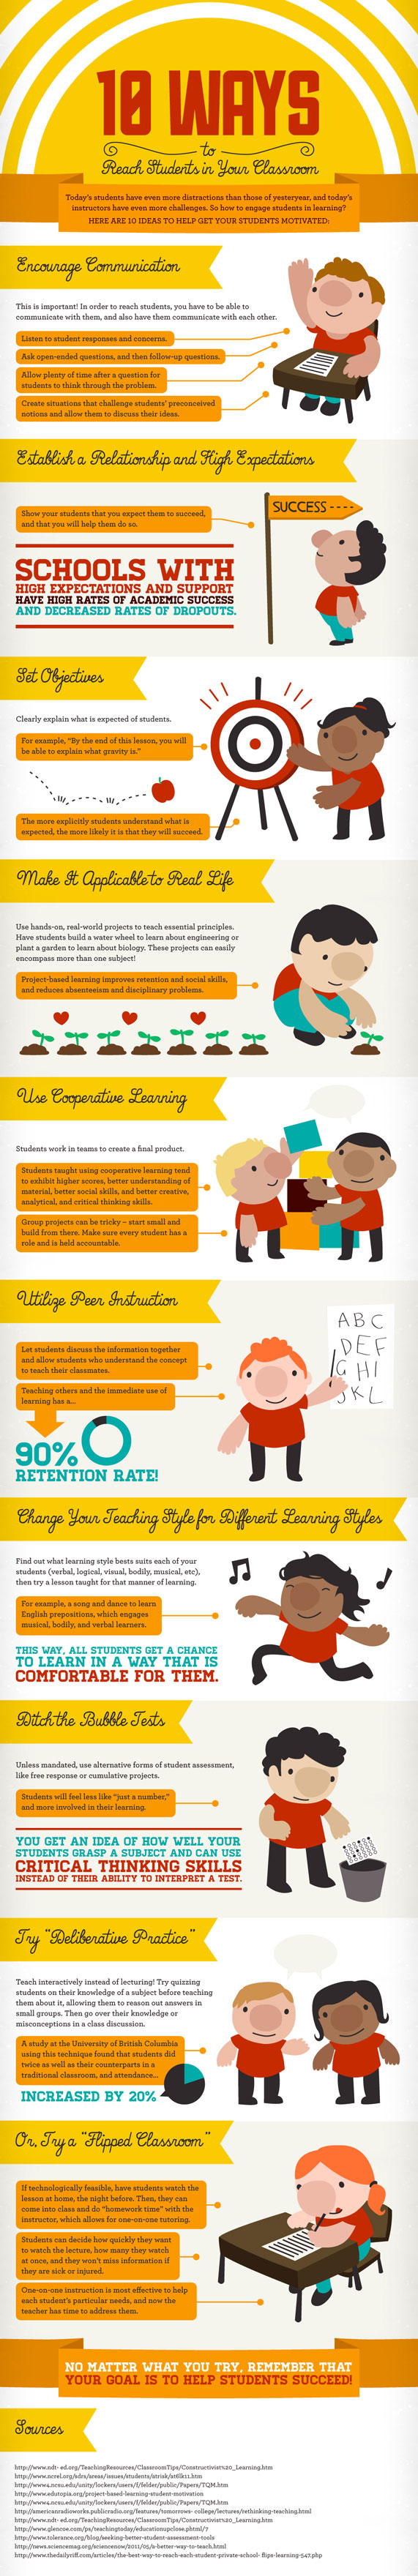 How to Motivate Children and Create Happy Classrooms - Infographic